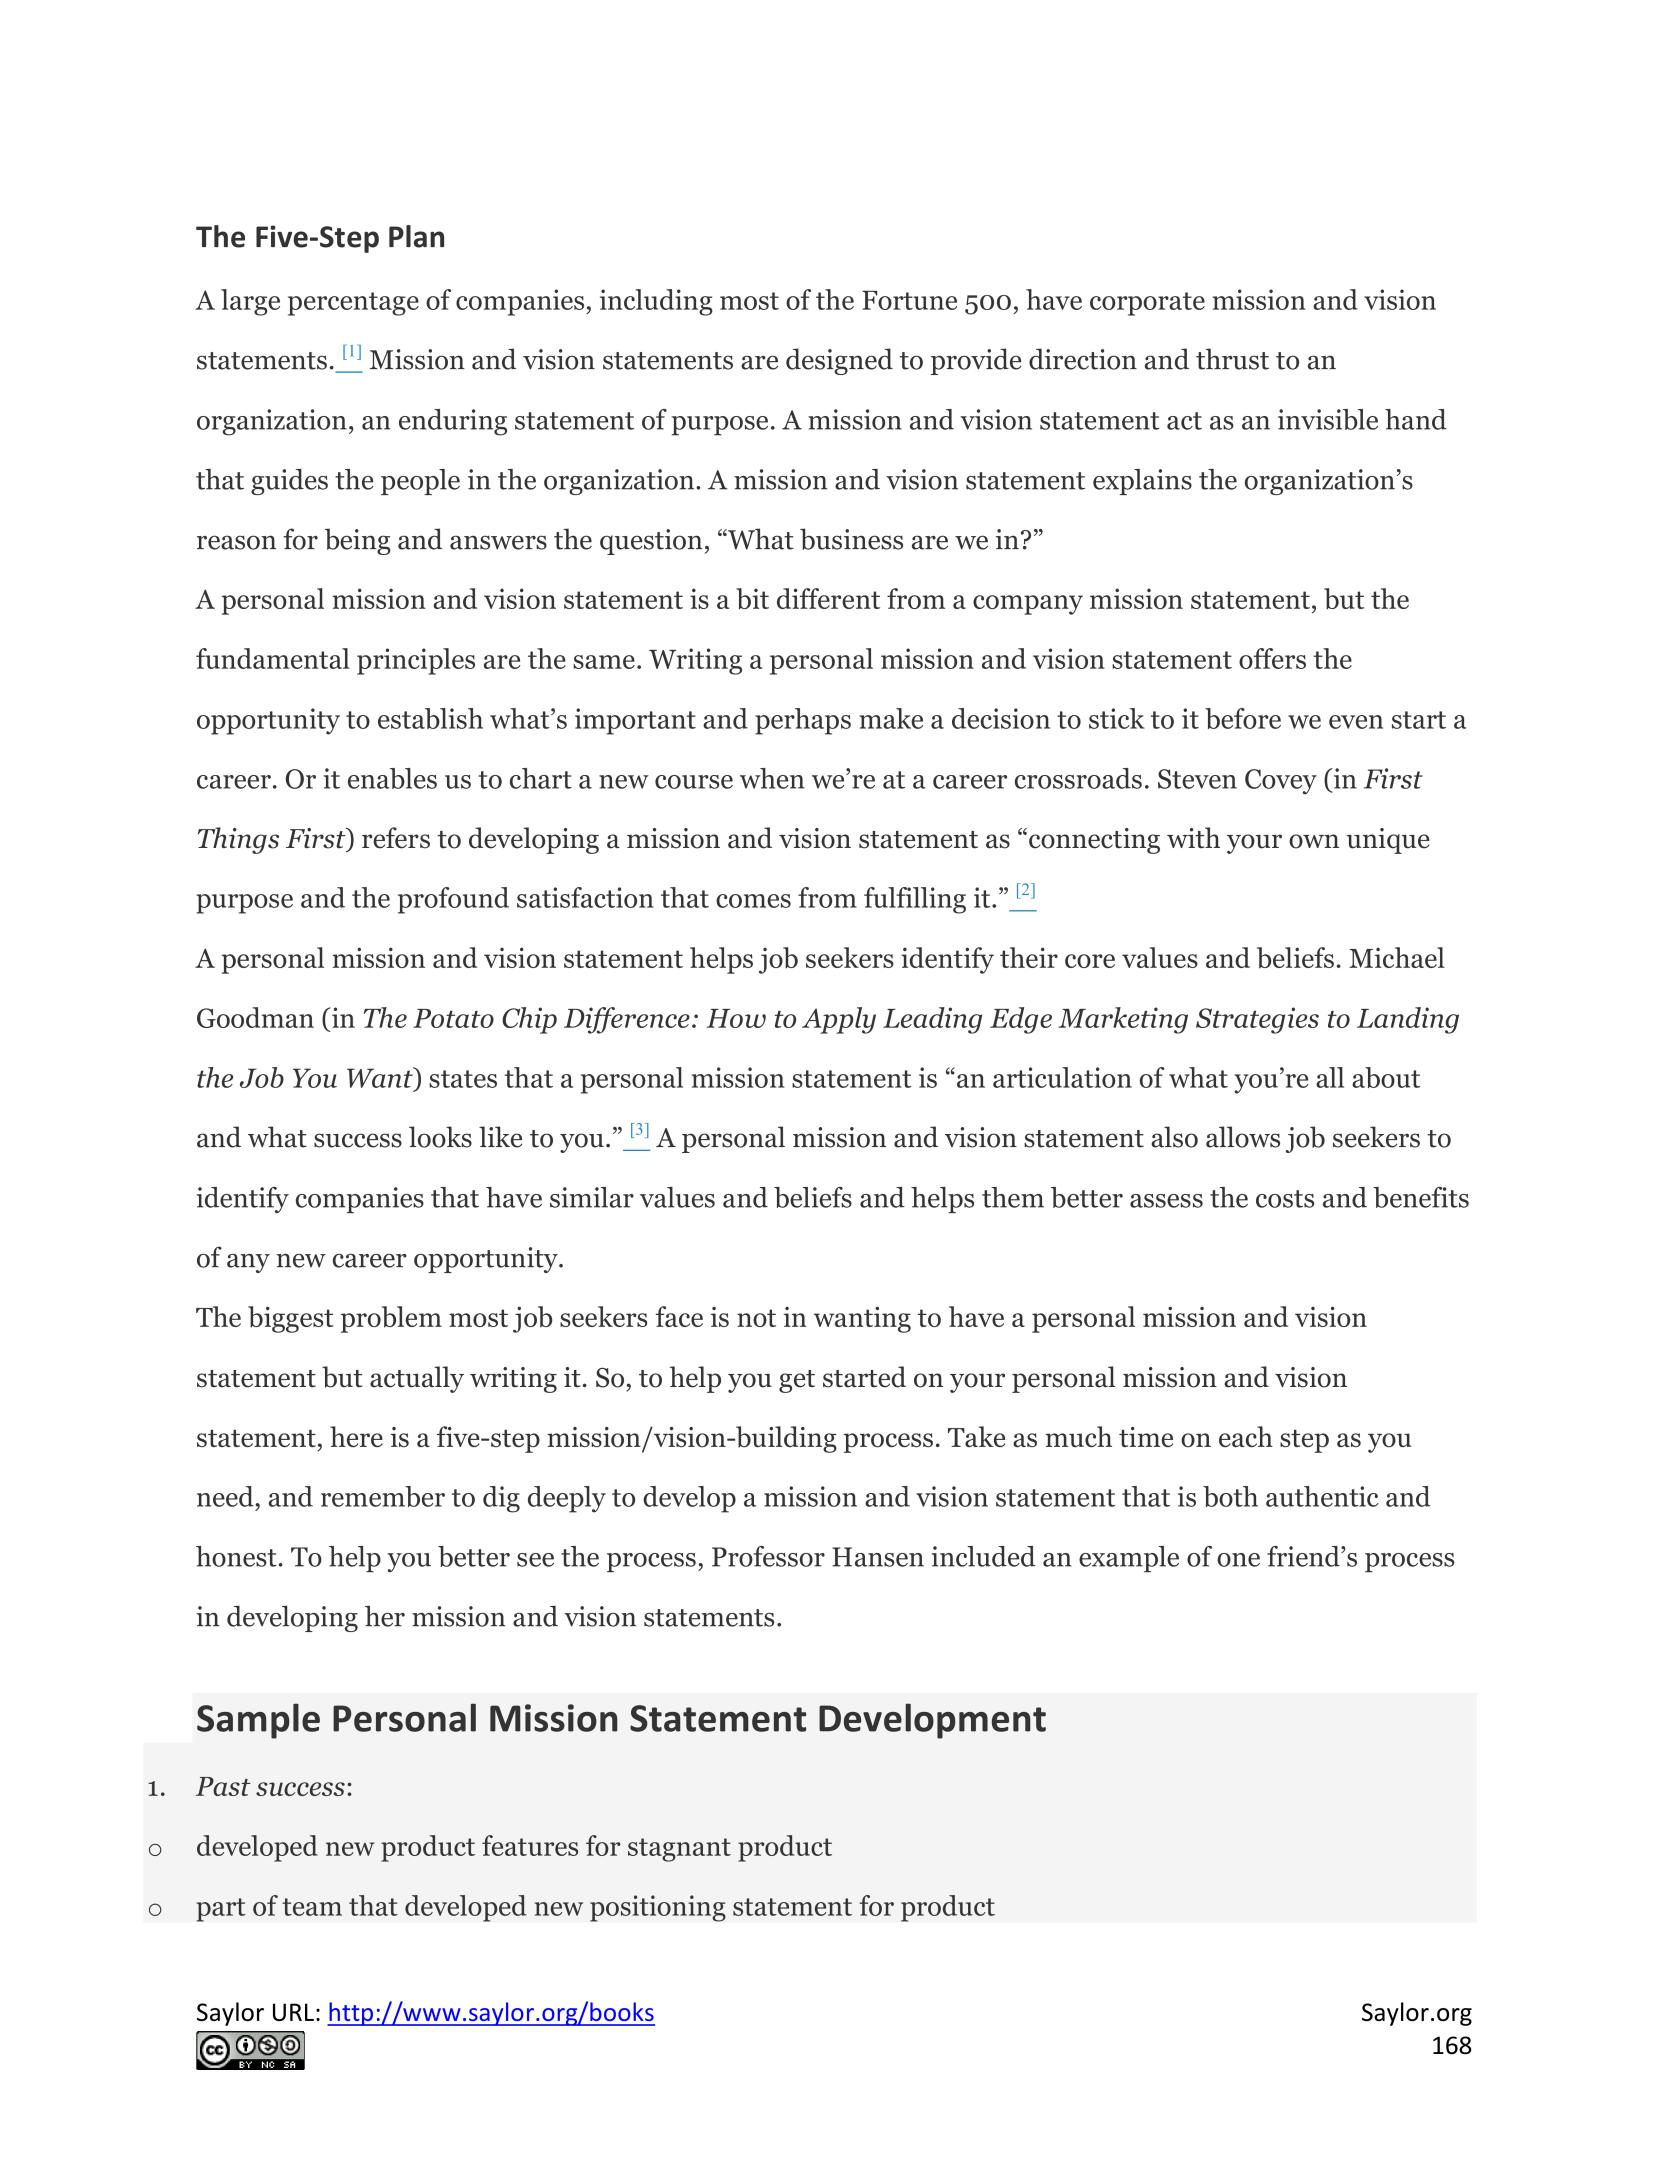 developing a personal mission statement